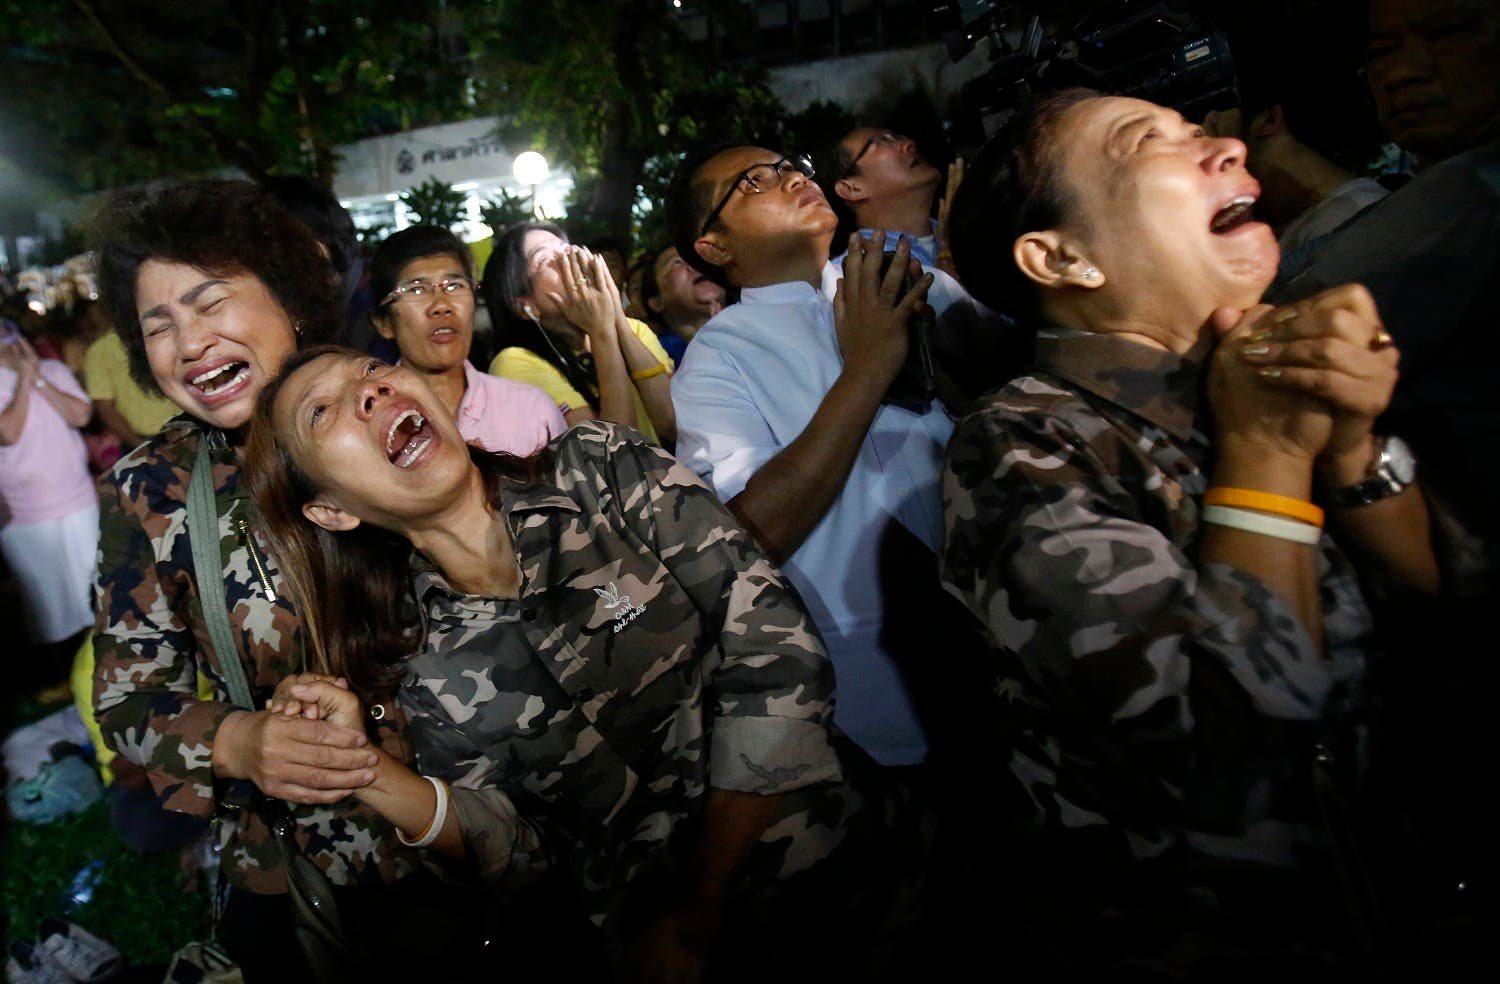 Thai people cry after Royal Palace's announcement outside Siriraj Hospital where King Bhumibol Adulyadej was being treated, in Bangkok, Thailand, Thursday, Oct. 13, 2016 (Photo: AP /Sakchai Lalit)